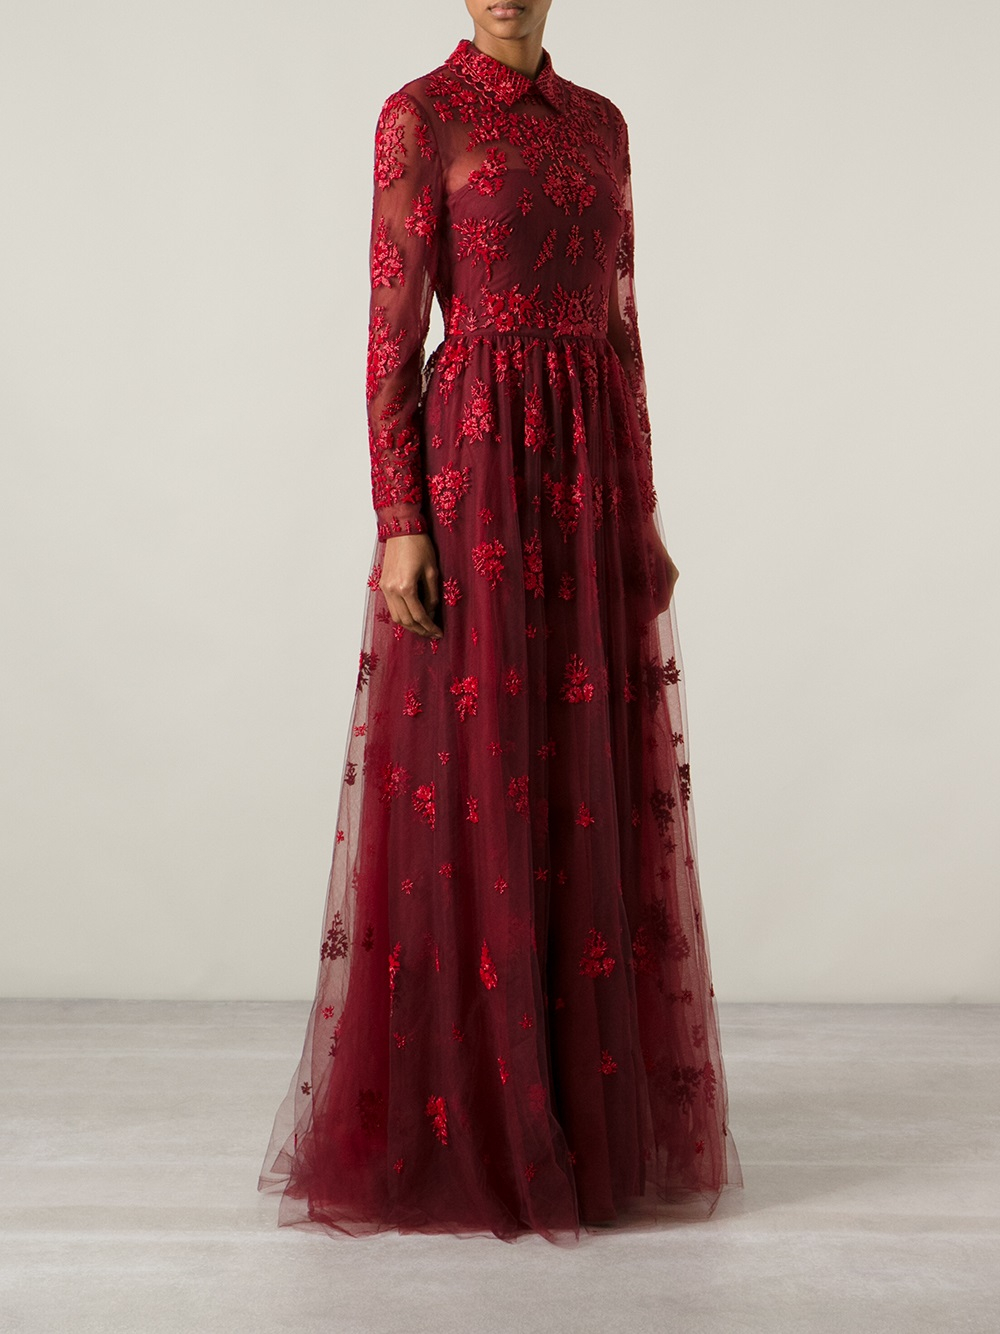 Lyst - Valentino Beaded Evening Dress in Red